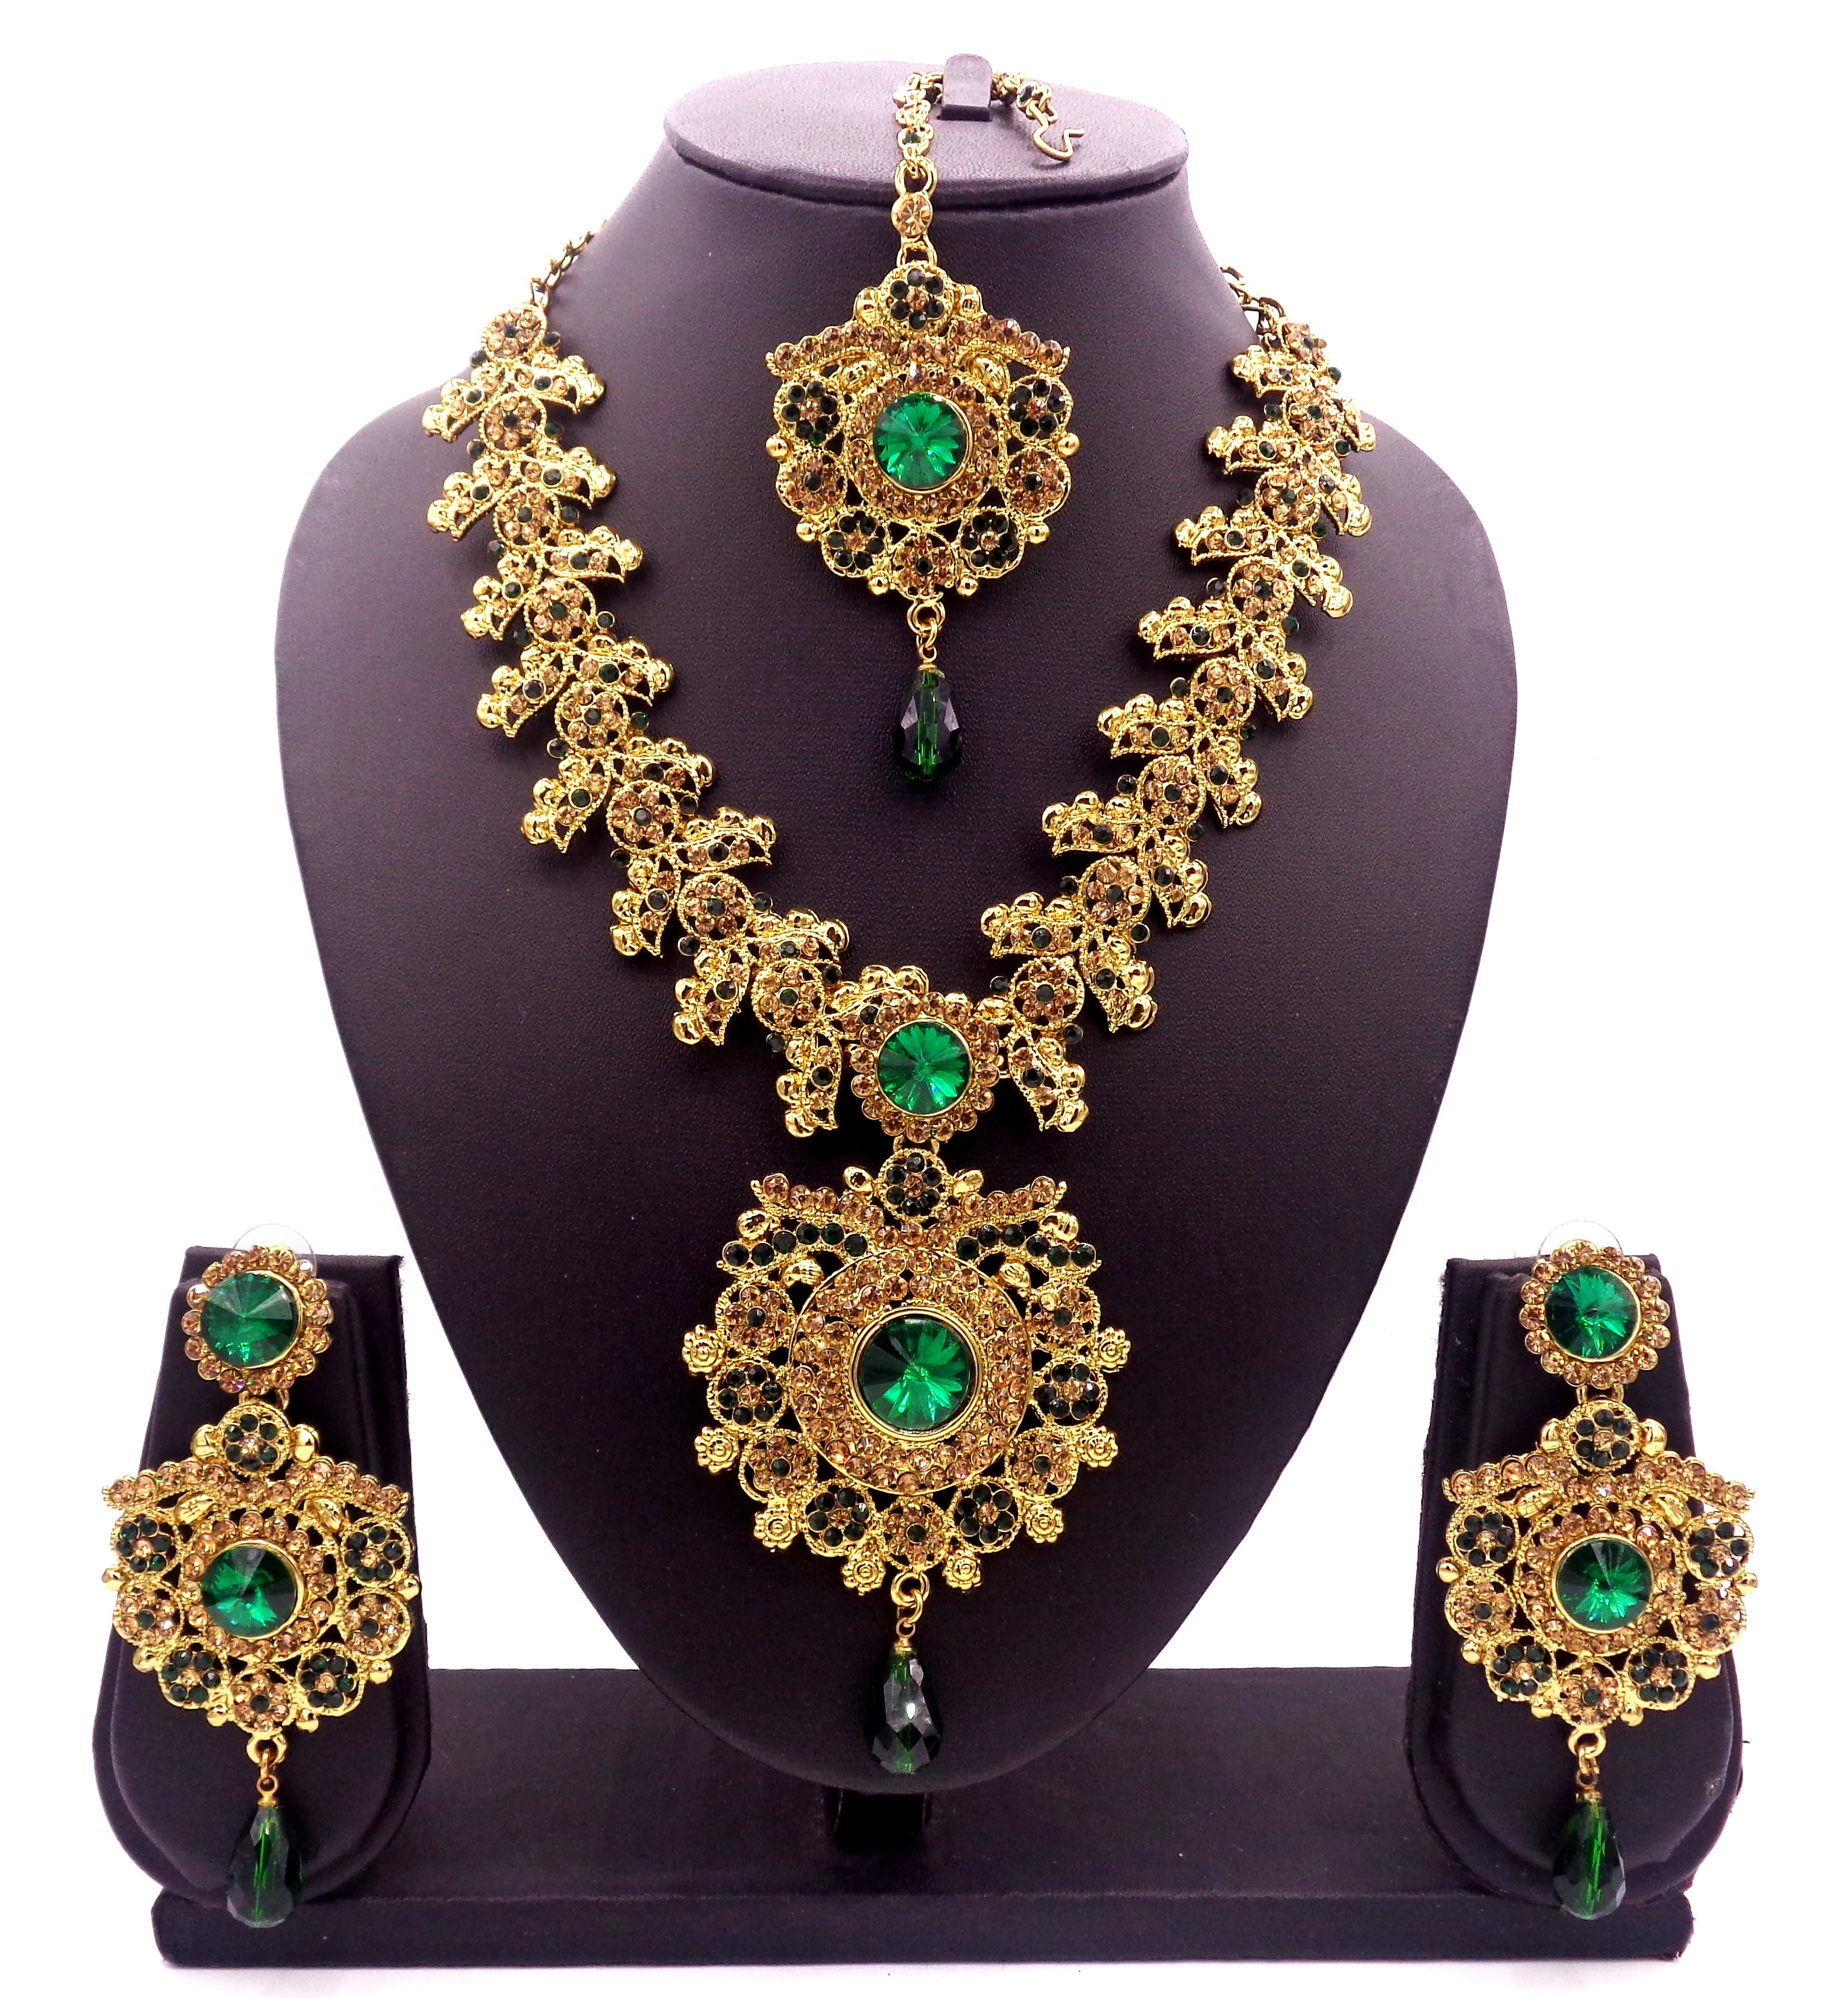 ec8c6f64932 Green Jewellery – Buy Green Colour Jewellery Sets Online For Women   Mirraw